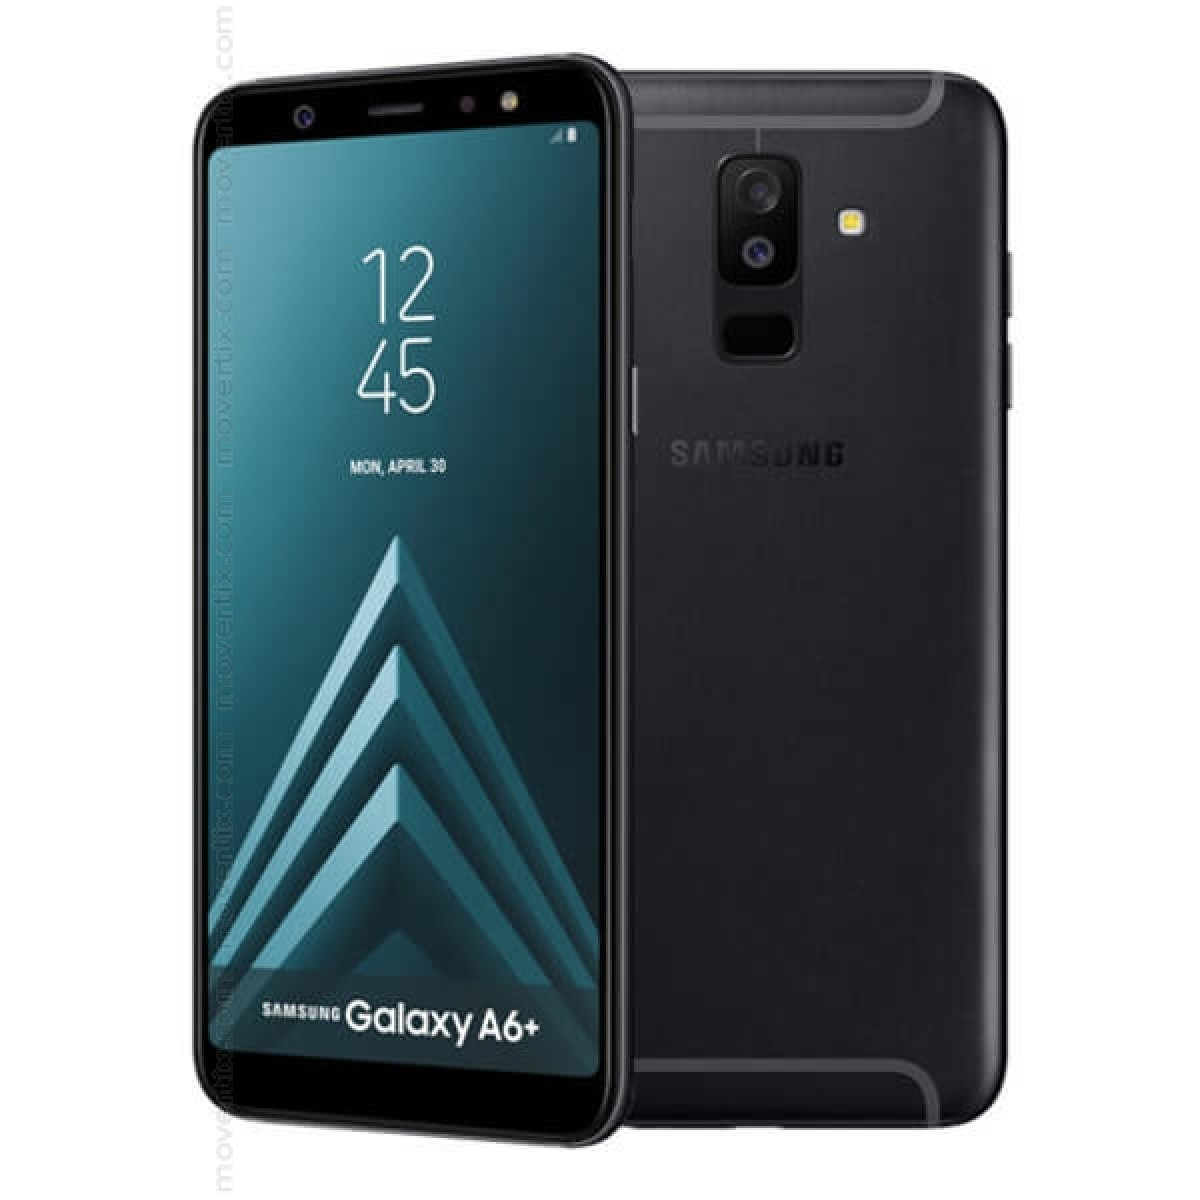 56066c6e87d The Samsung Galaxy A6 Plus (2018) Dual SIM in black color is a mid-range  smartphone with top features like the 6-inch screen without frames